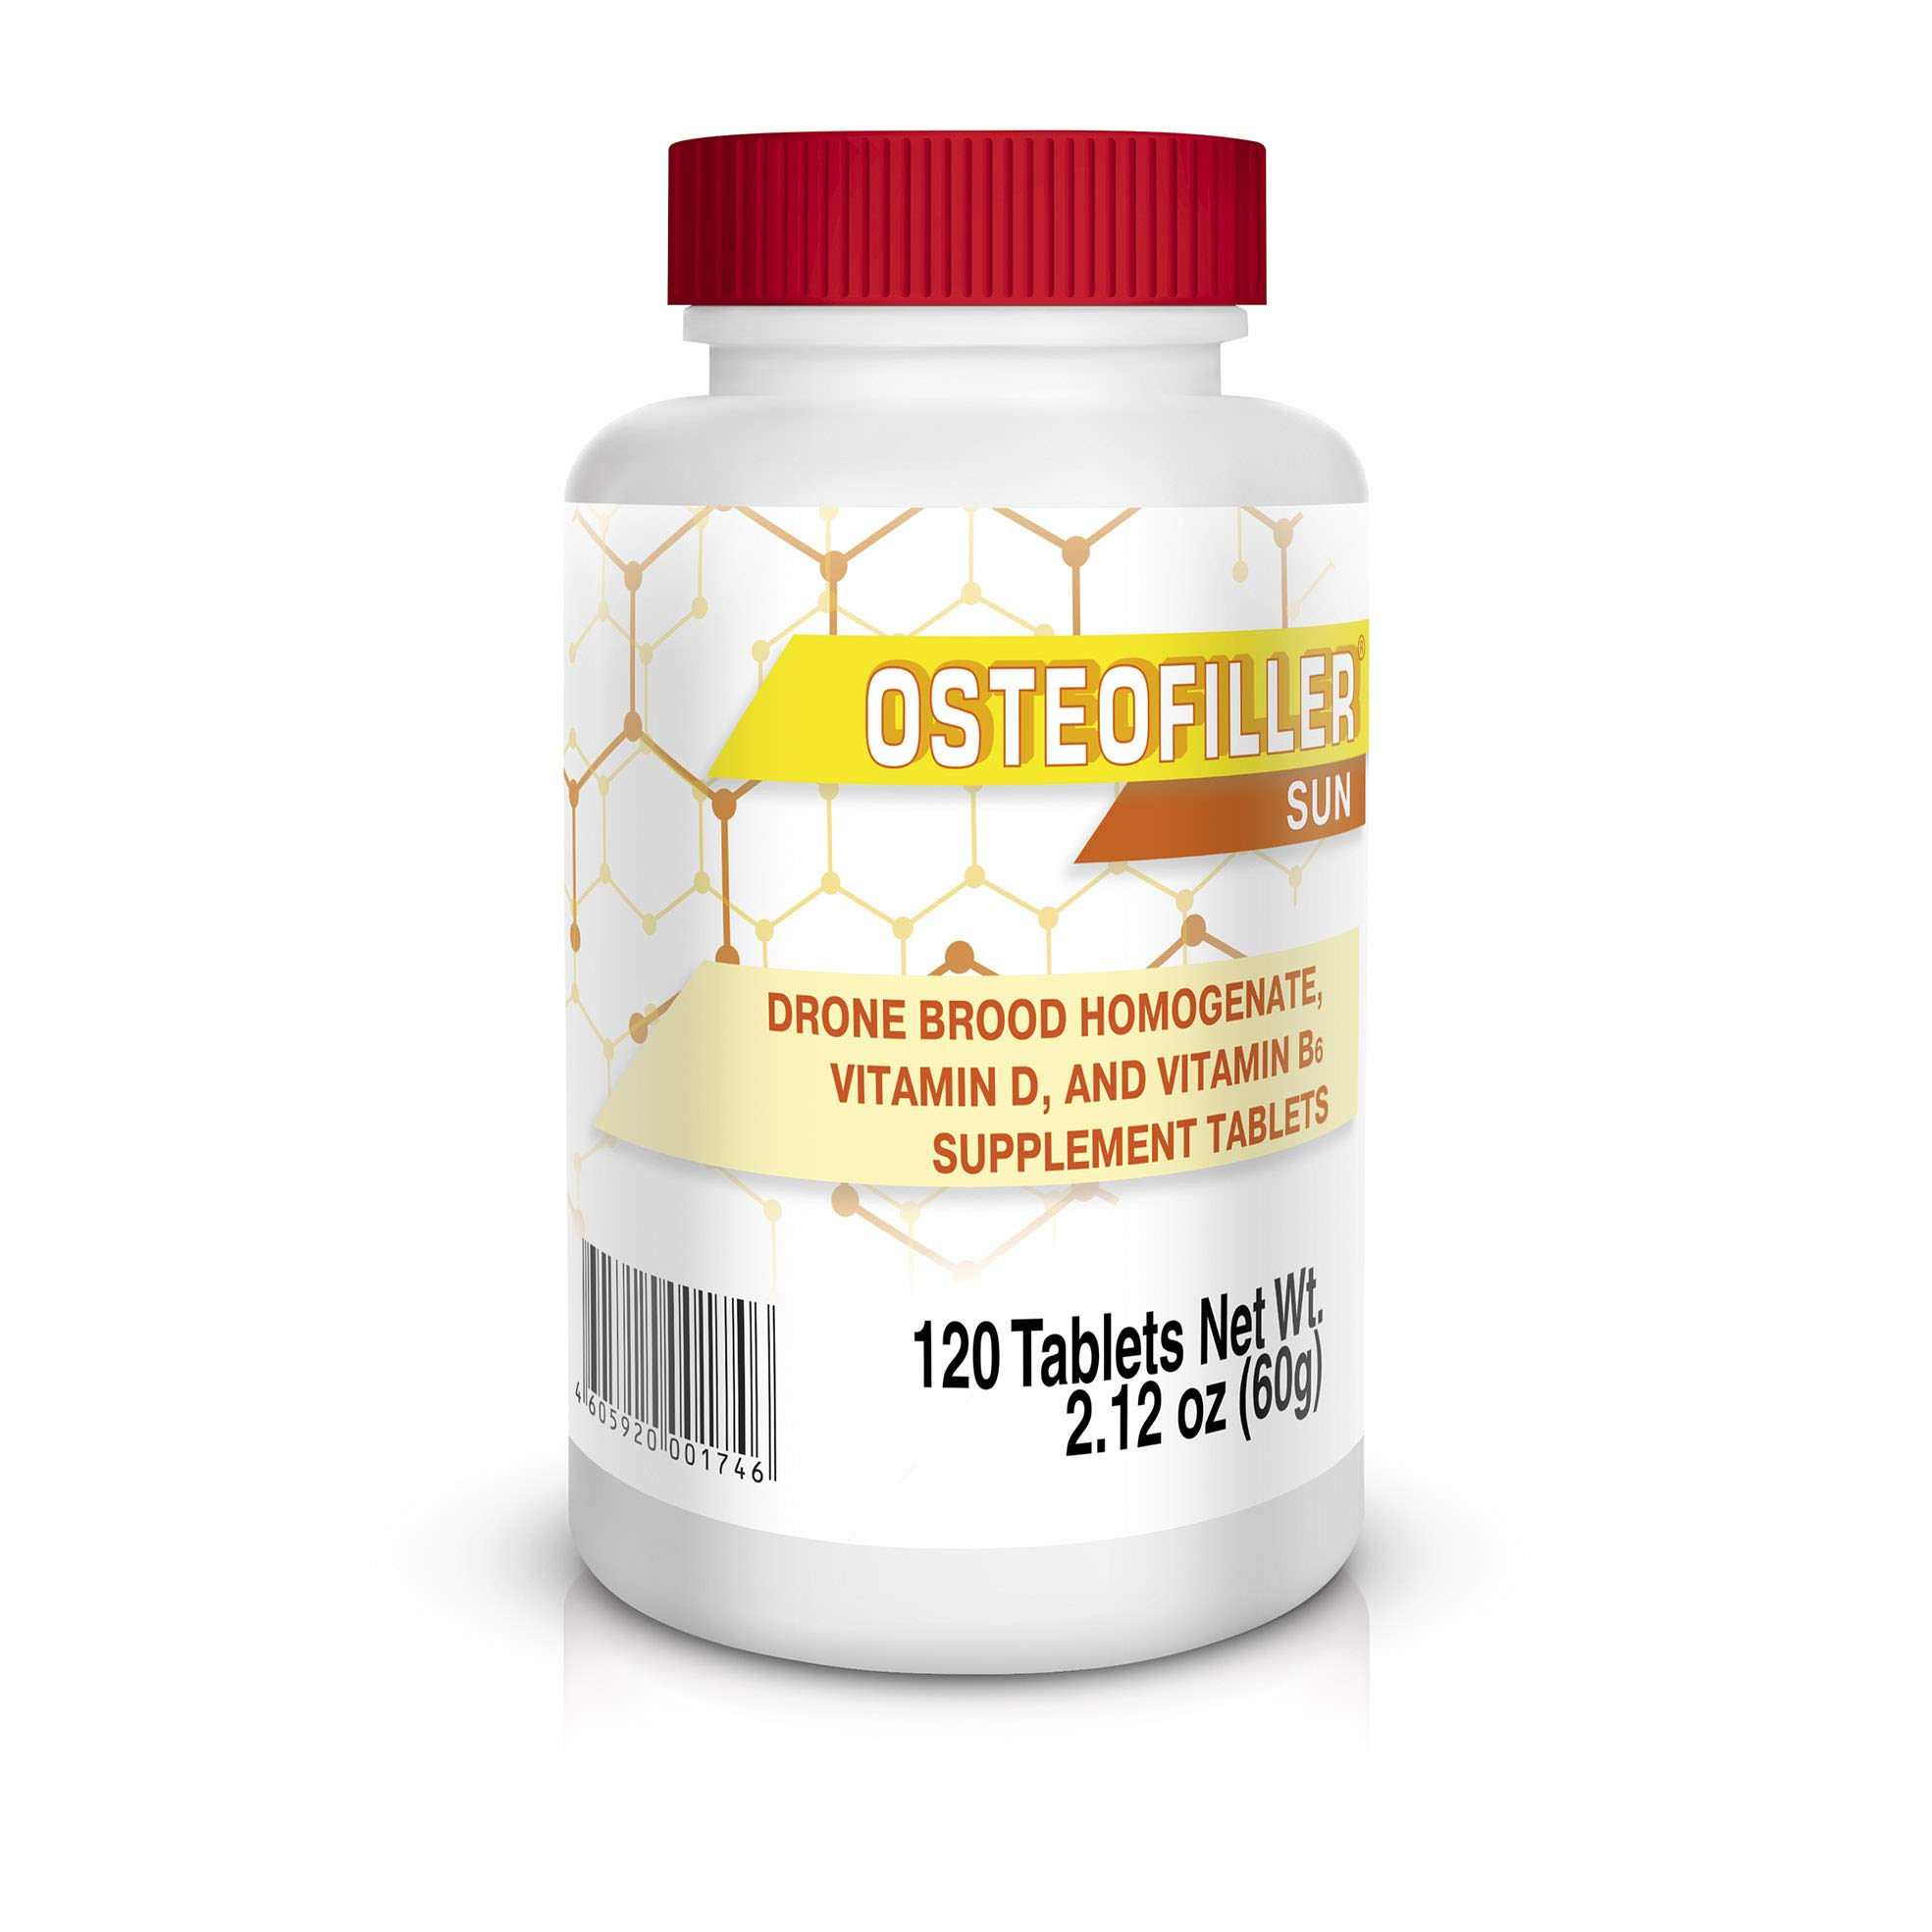 Osteofiller Sun - New Generation Vitamins for strengthening of Bones and Increase of Immunity at Insufficient Sunlight Exposure and Risk of hypercalcemia by Osteofiller